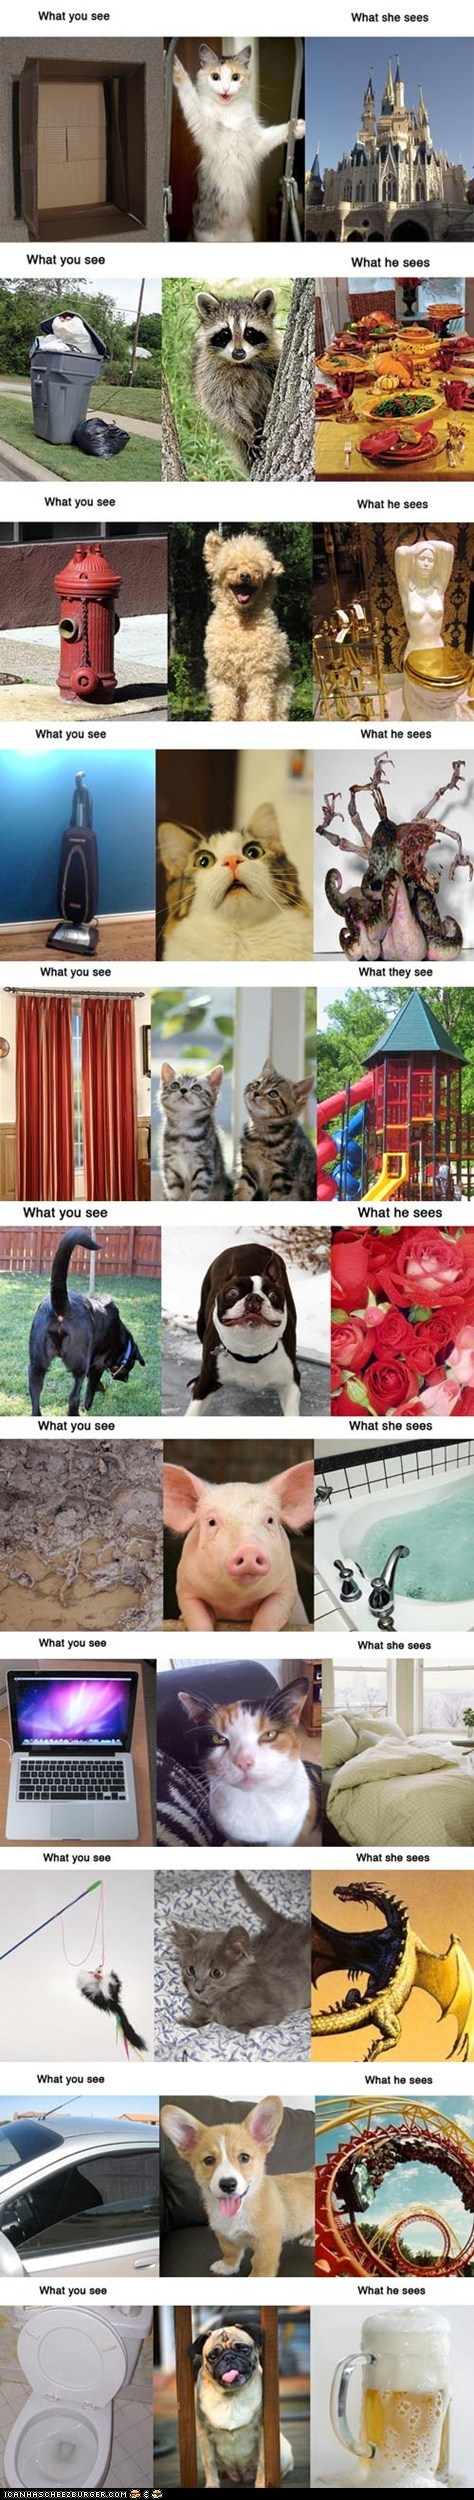 best of the week Cats dogs perception pig raccoons vs what i see what they see - 6264140288